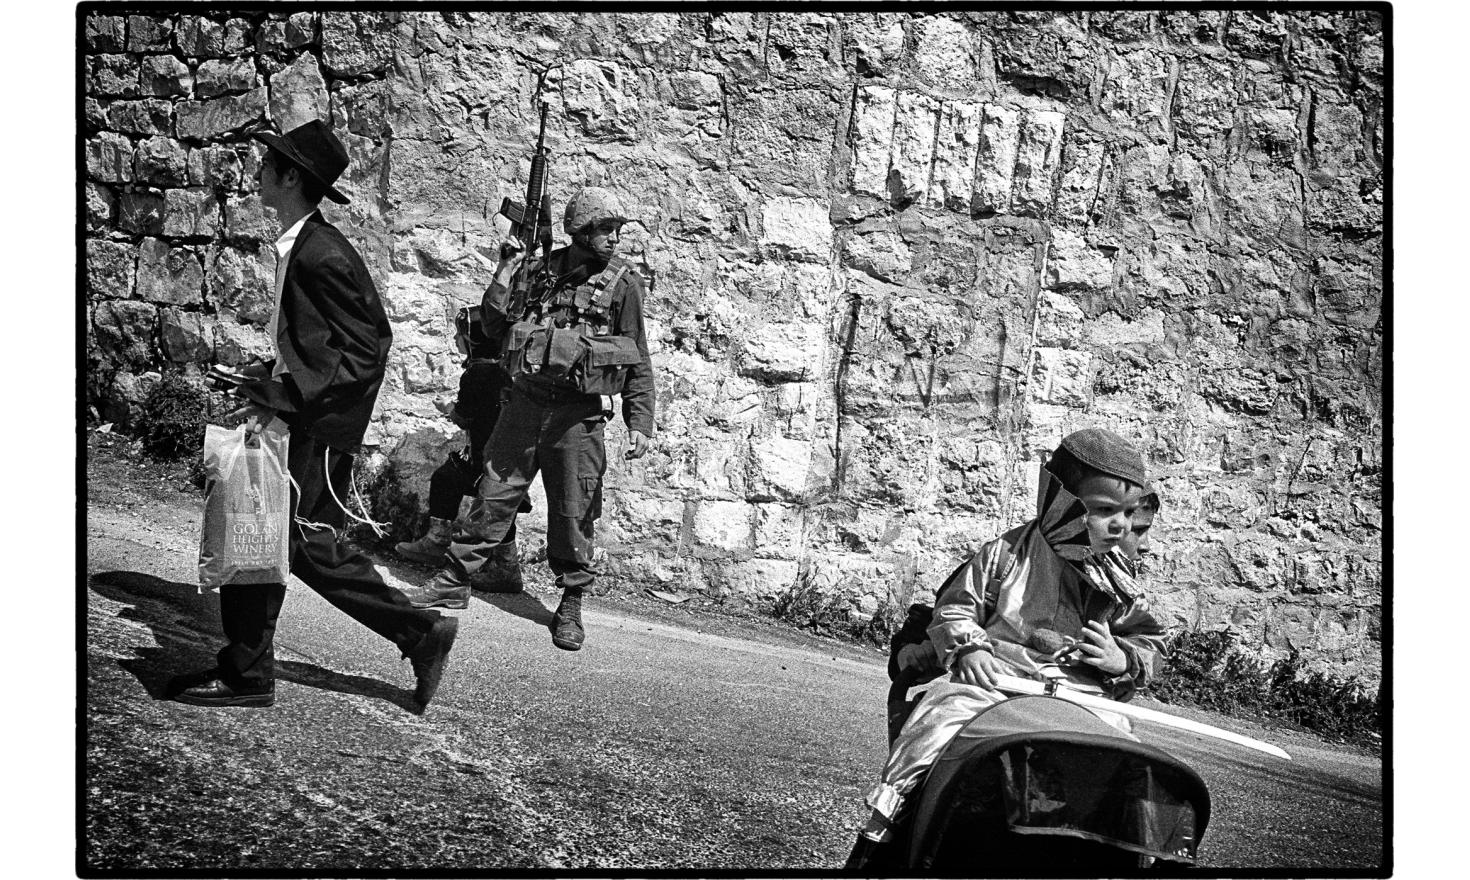 The celebration of Purim in Hebron is under the protection of the israeli army. Hebron, West bank. March 2005.